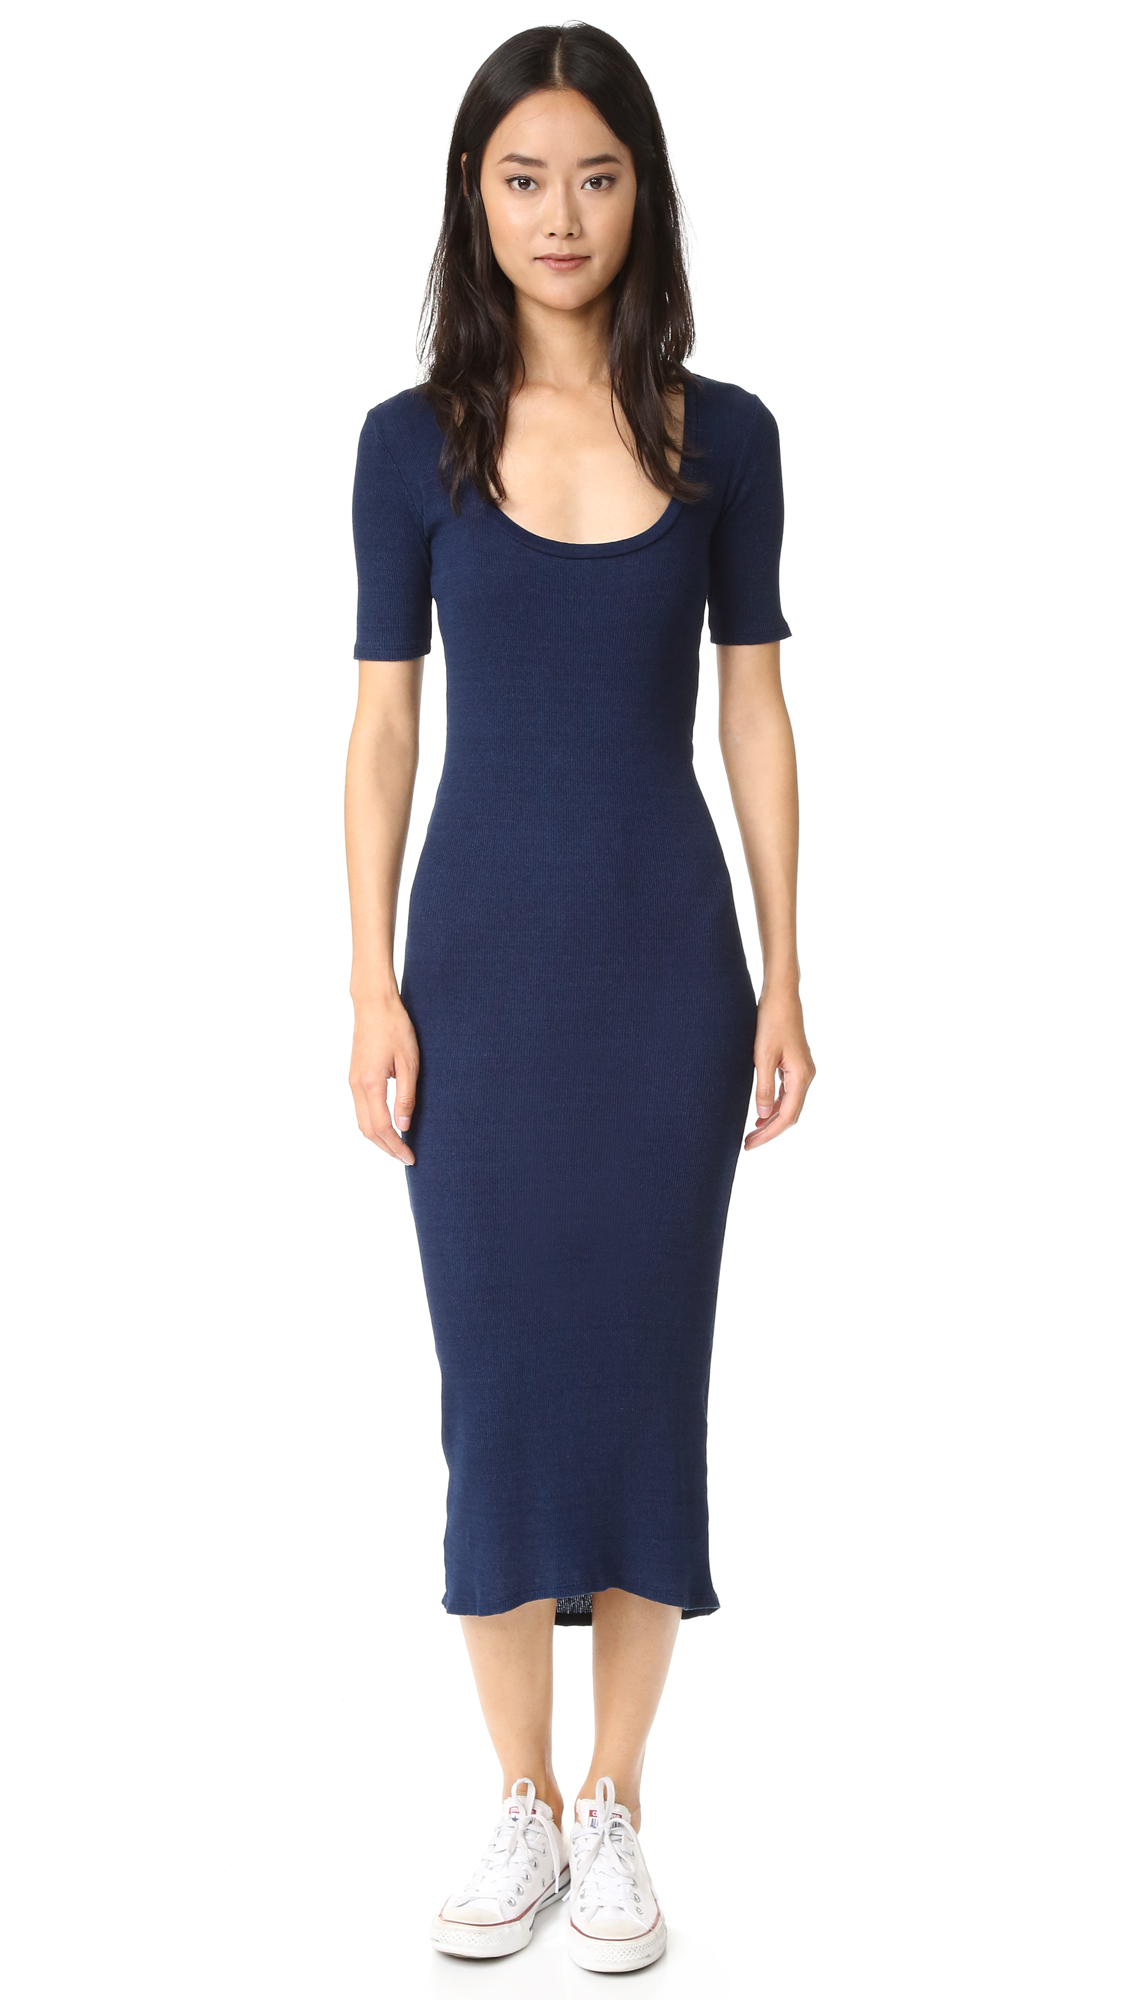 Ag Indigo Capsule Collection By Ag Elli Dress - Ikd-Five at Shopbop